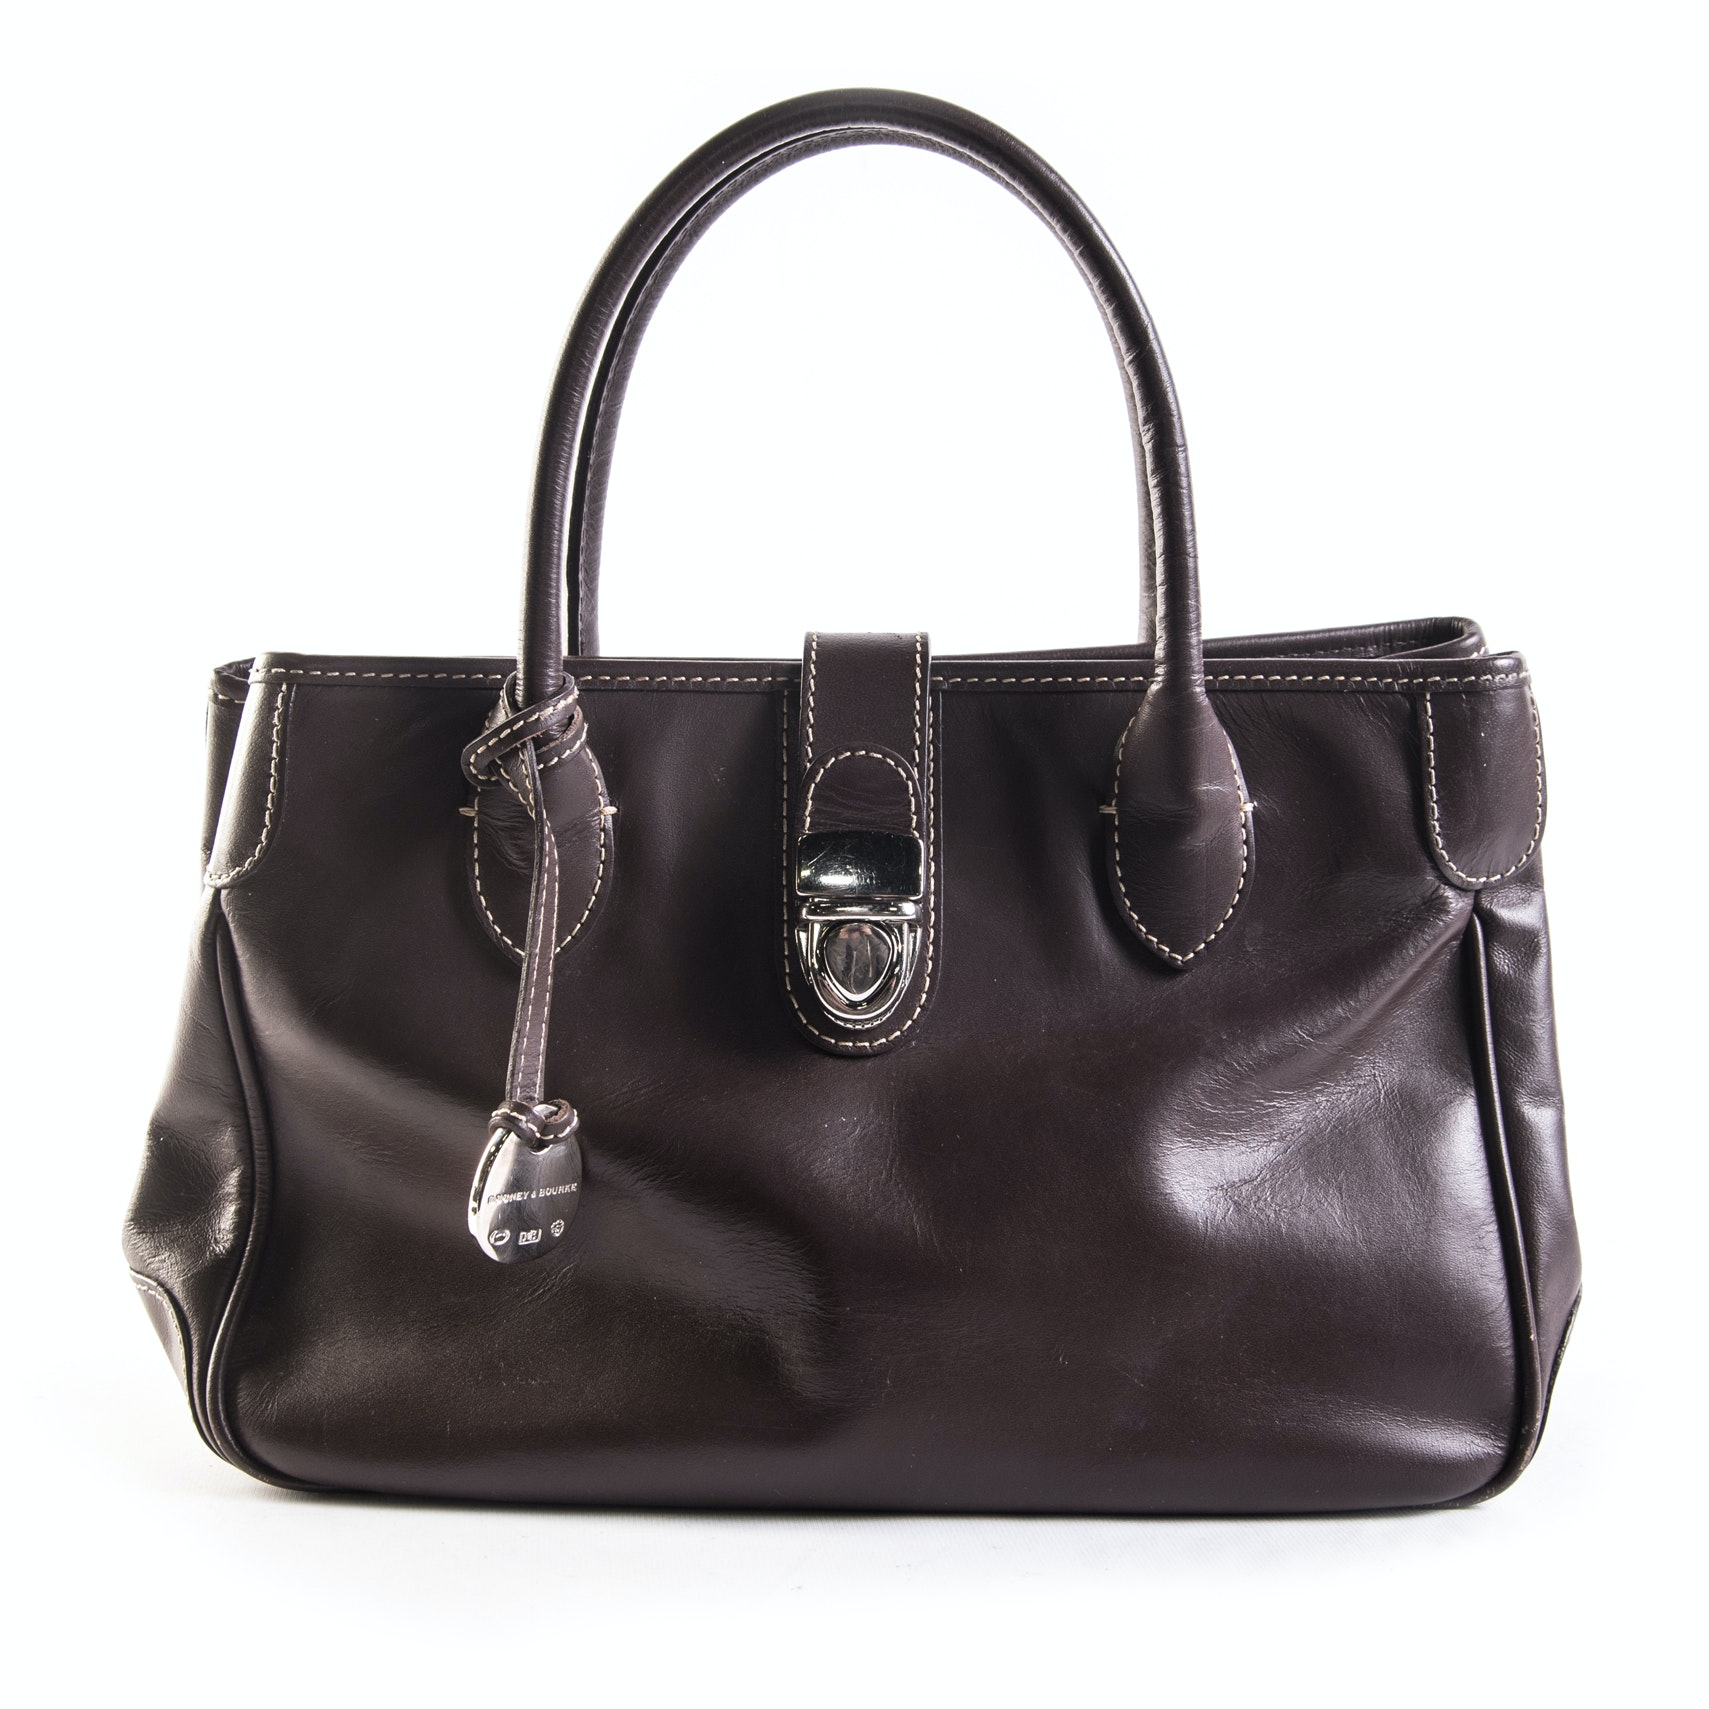 Dooney & Bourke Brown Leather Handbag